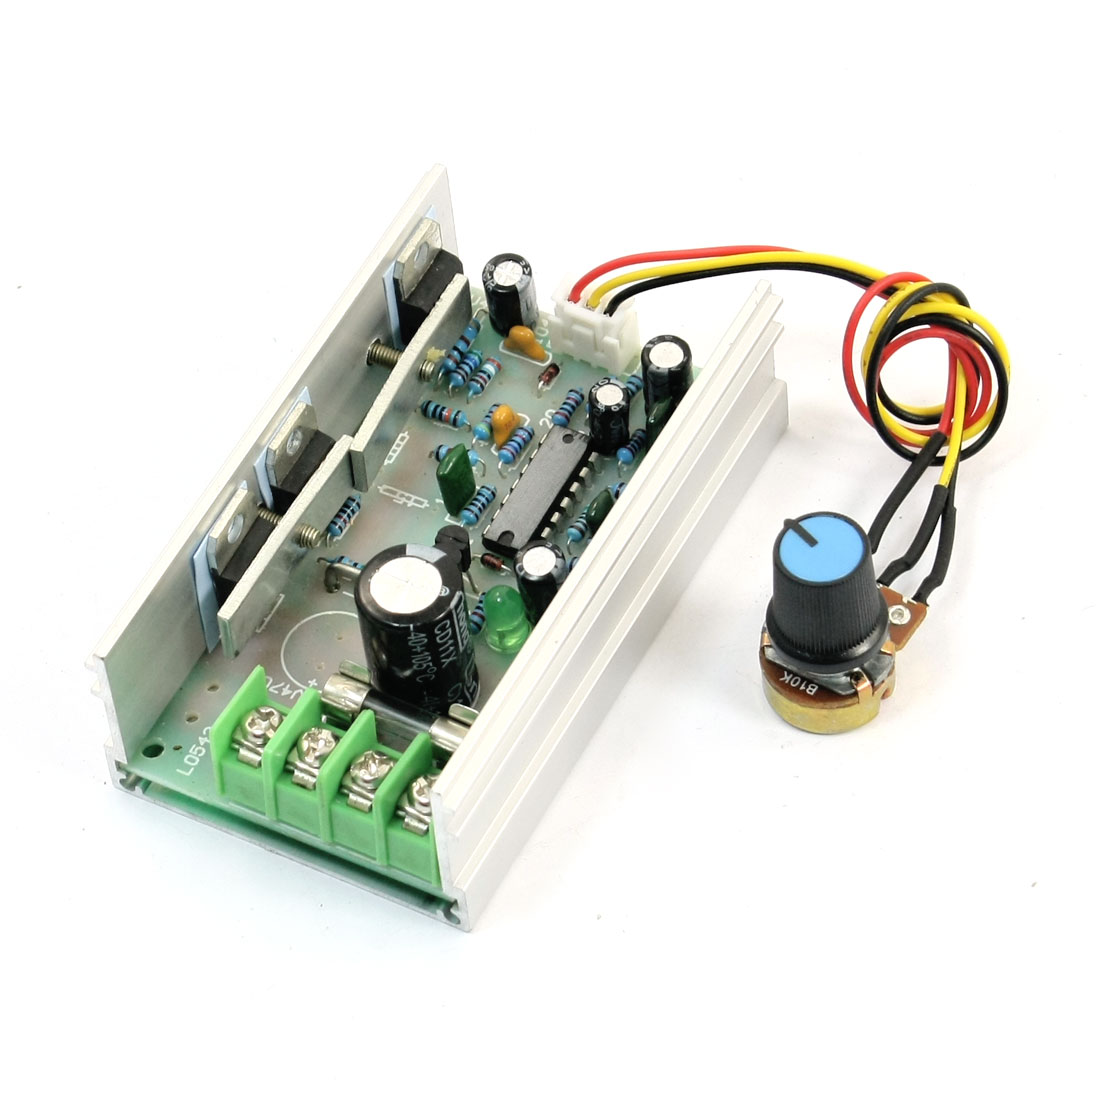 DC12-60V 10A Adjustable PWM Motor Speed Controller Governor Module w B10K Rotary Potentiometer